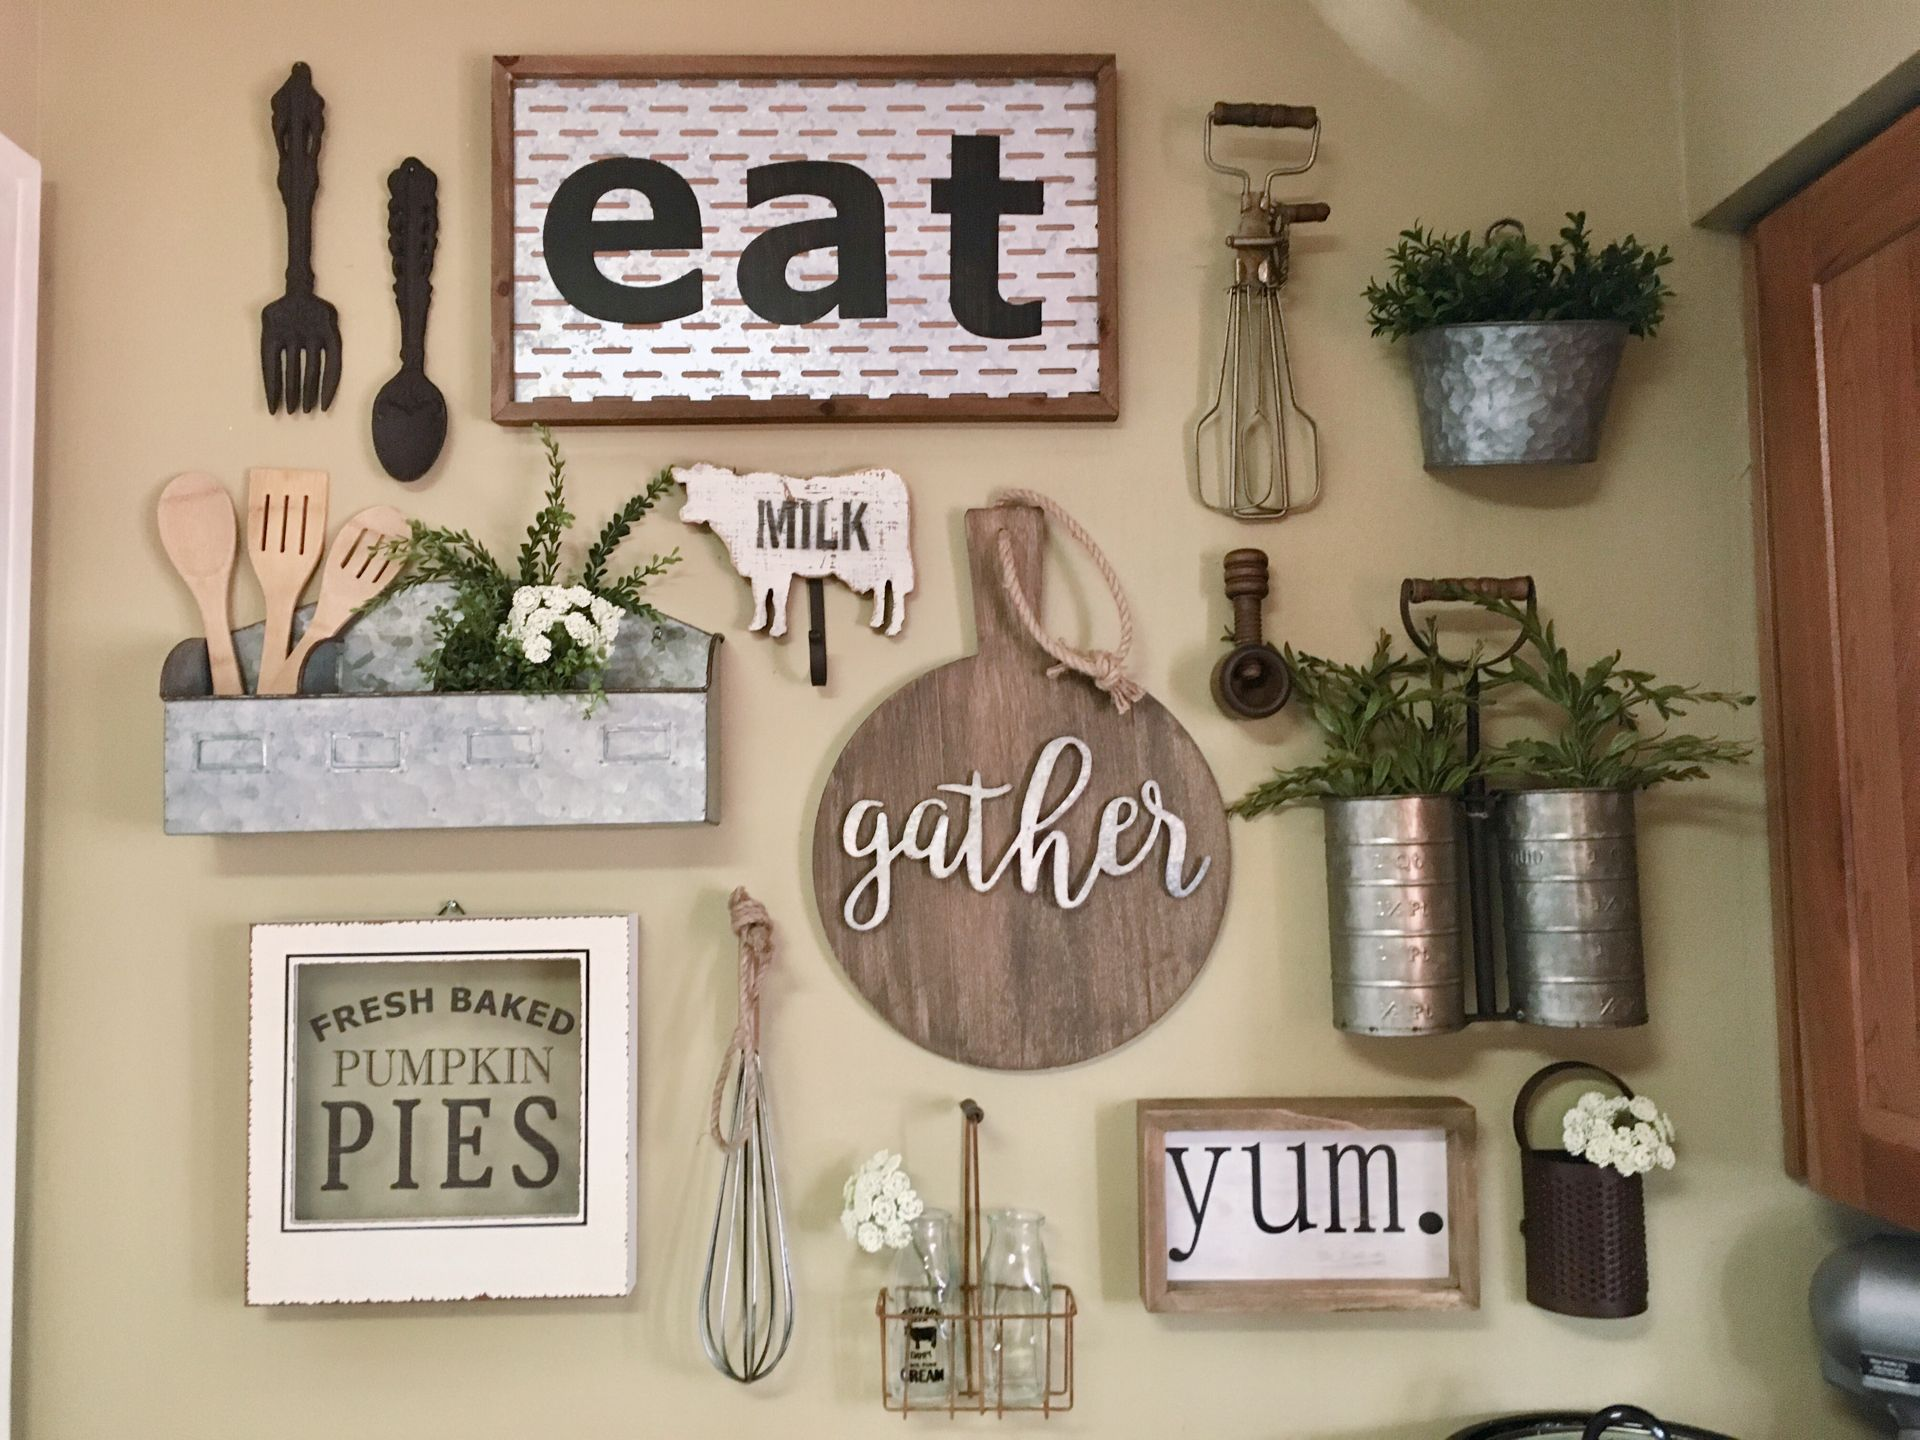 Kitchen gallery wall #KitchenDecor #GalleryWall #Farmhouse